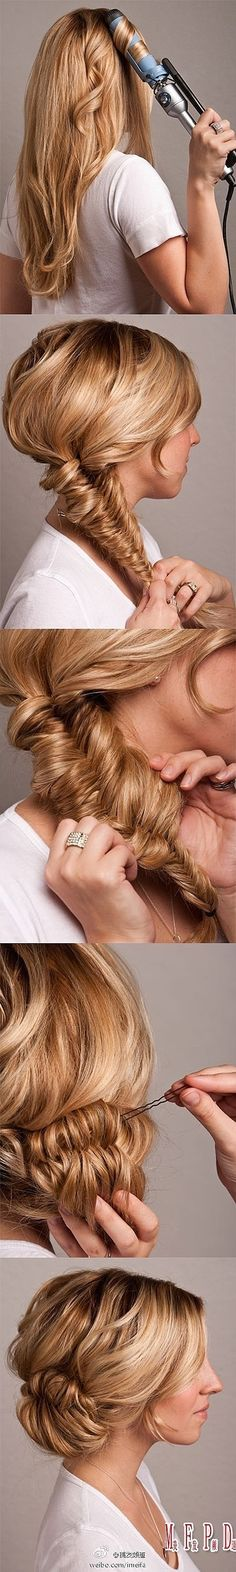 L'eggs ♥'s the Beauty Thesis's step-by-step on how to make a simple fishtail braided knot. Great for day or night!